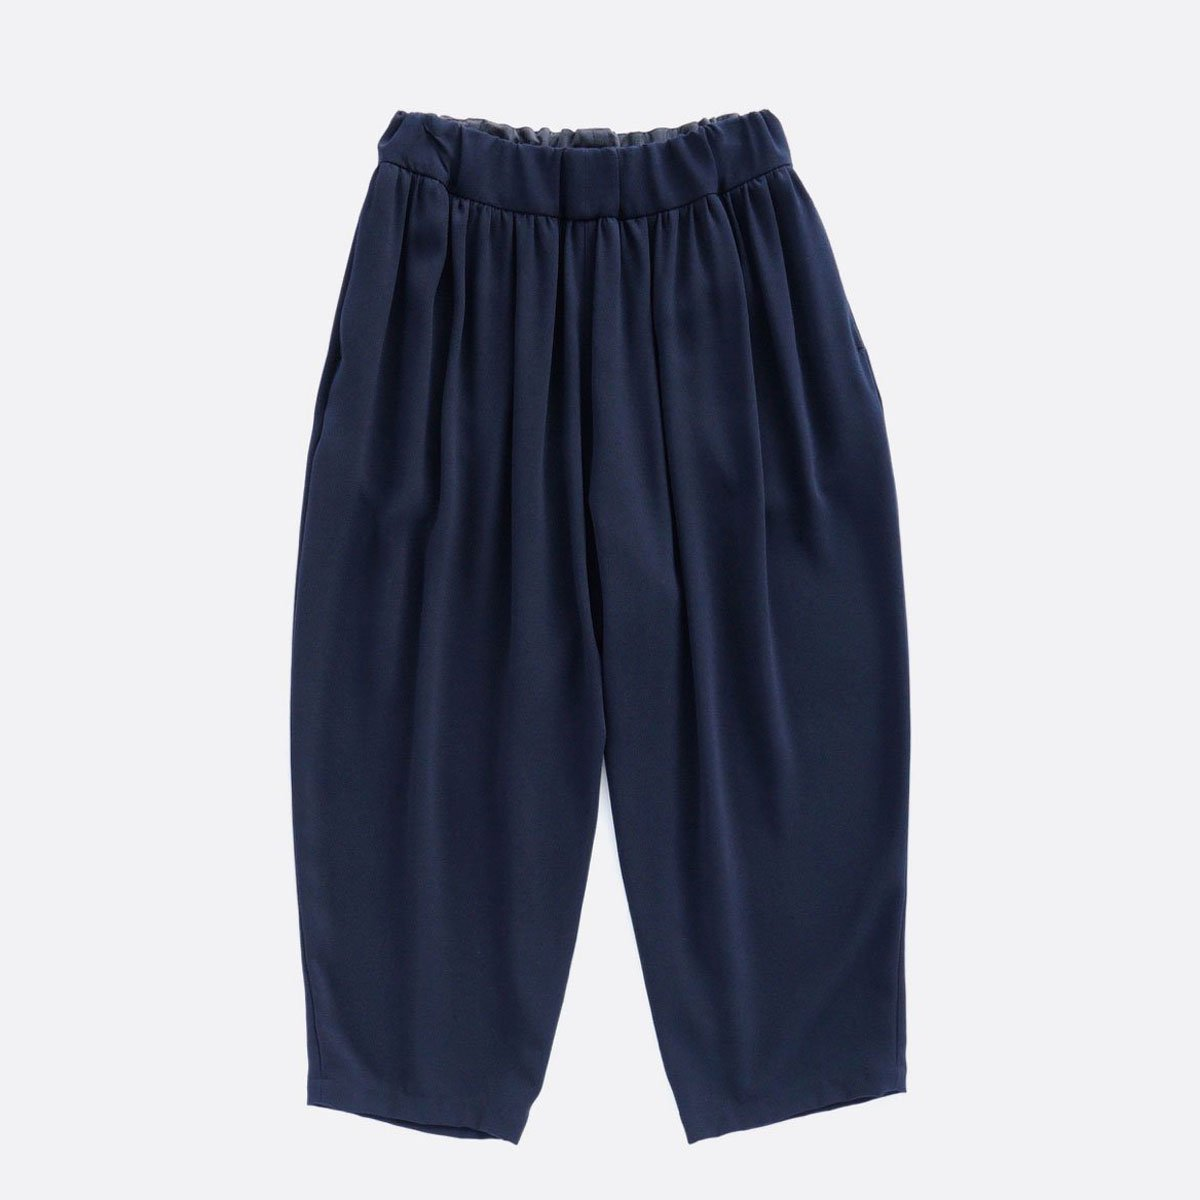 NO CONTROL AIR ACETATE & POLYESTER DOUBLE CLOTH WIDE EASY PANTS (navy)